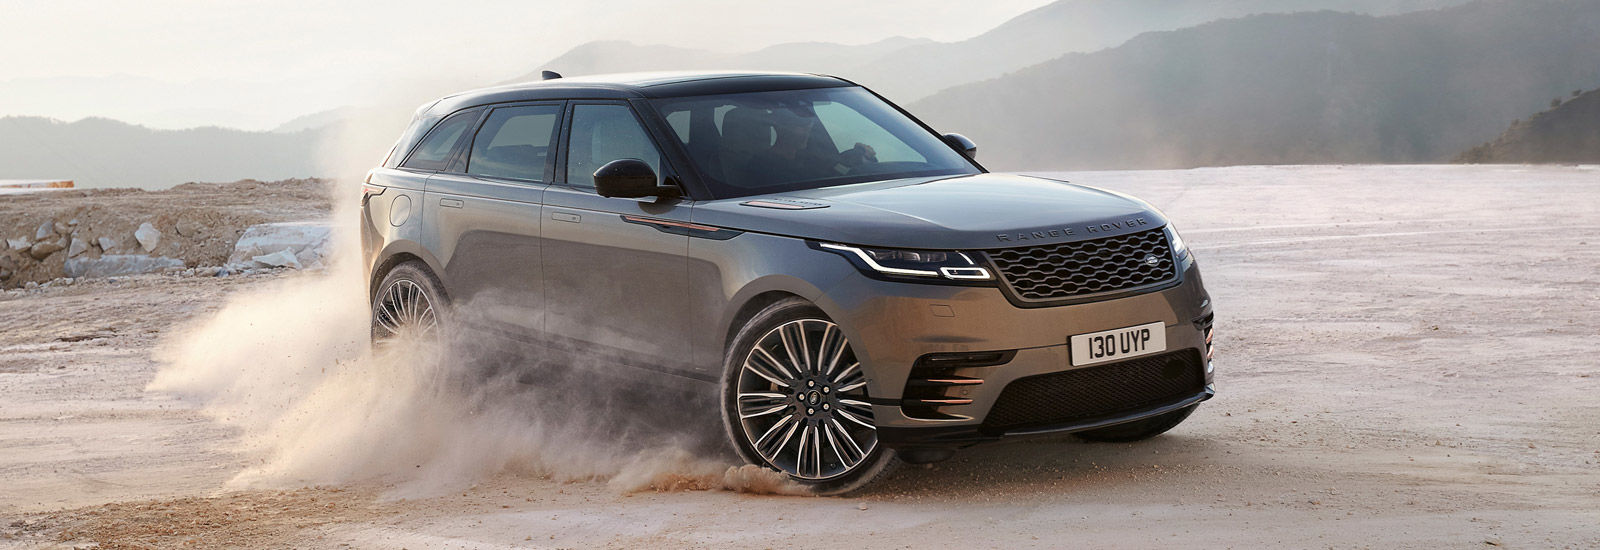 range rover velar coupe price specs release date carwow. Black Bedroom Furniture Sets. Home Design Ideas